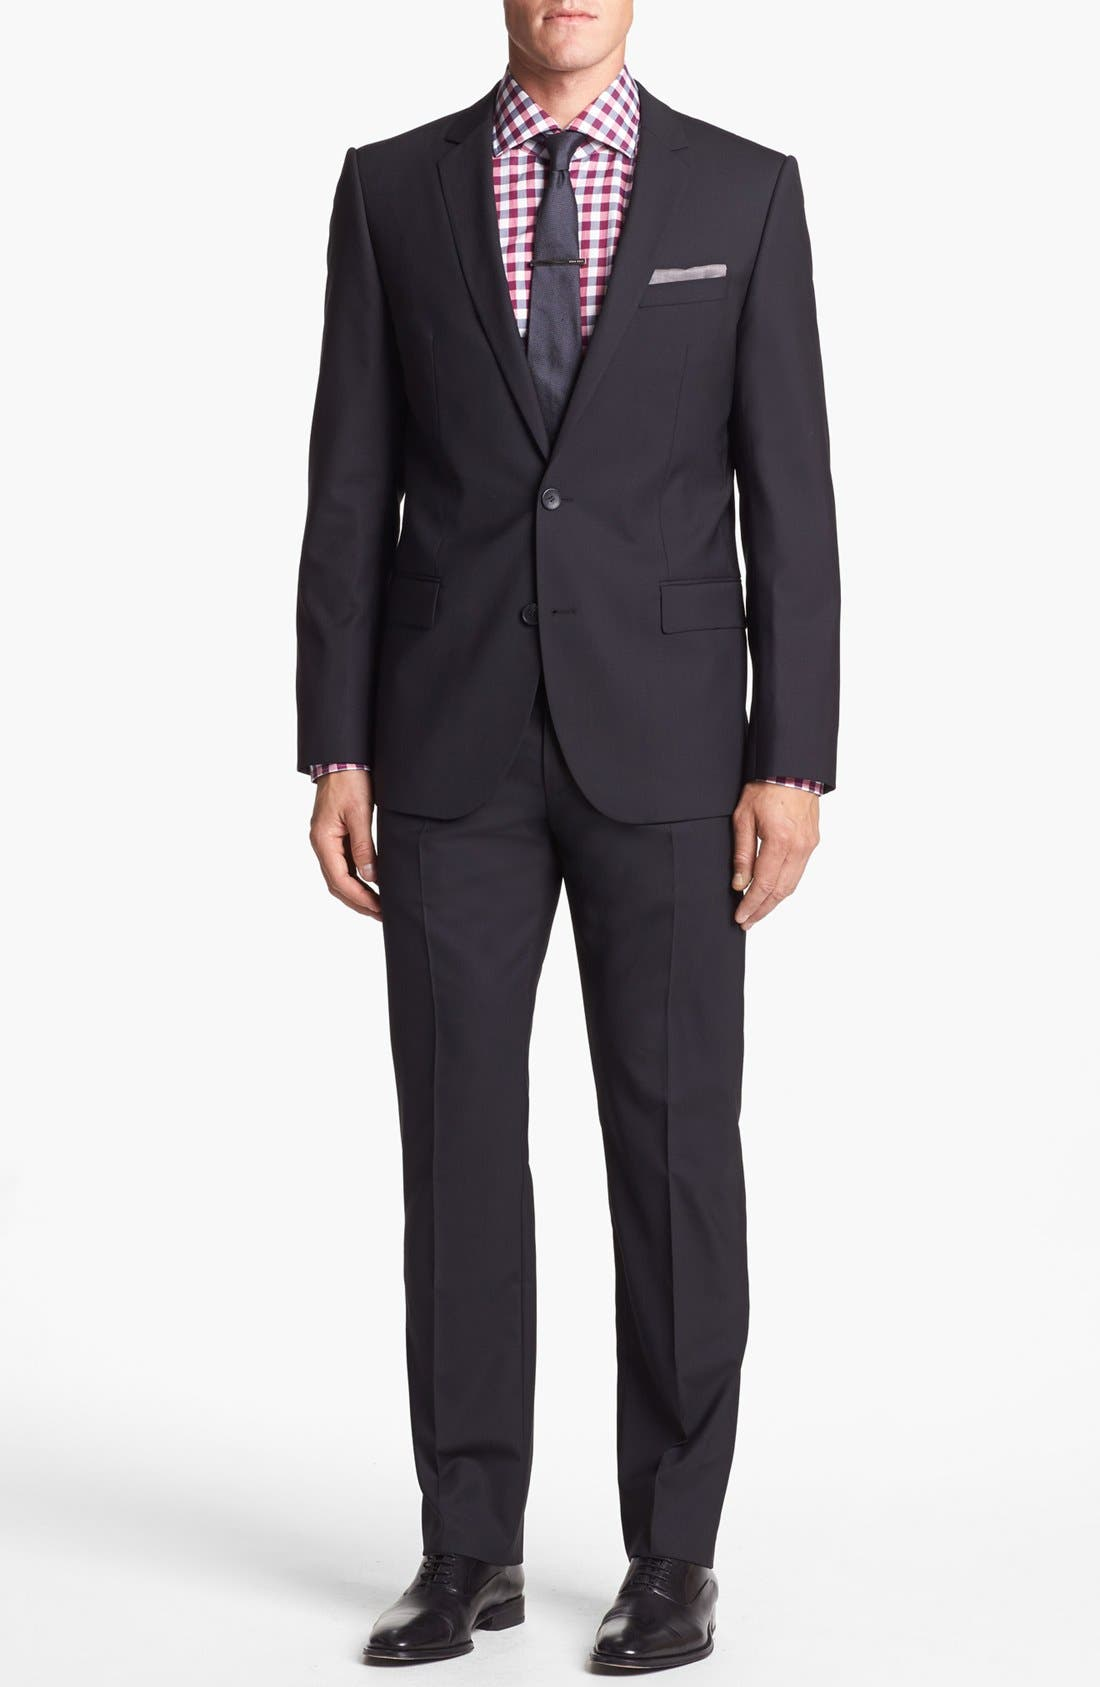 Main Image - HUGO 'Amaro/Heise' Trim Fit Stretch Suit